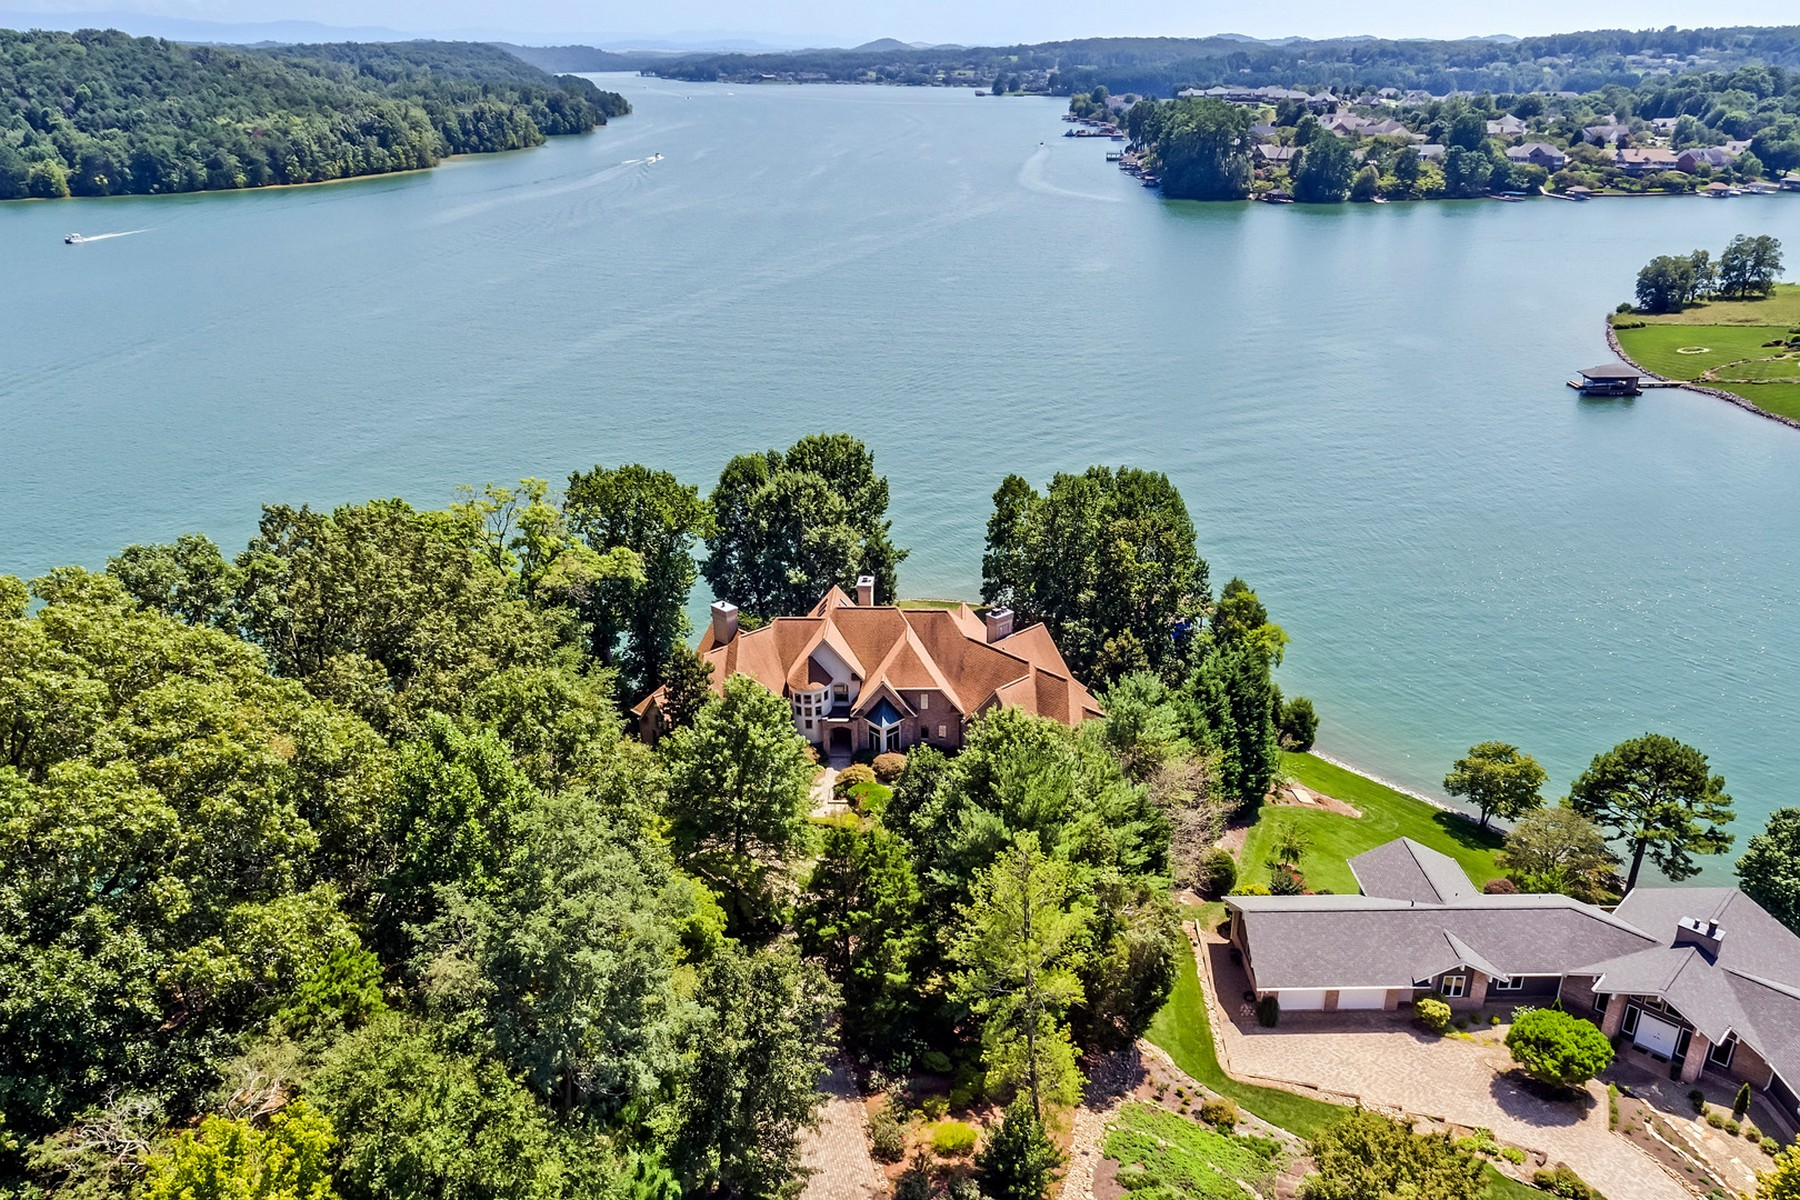 Additional photo for property listing at Lakefront Home With Majestic Views 234 Tecumseh Way Loudon, Tennessee 37774 United States